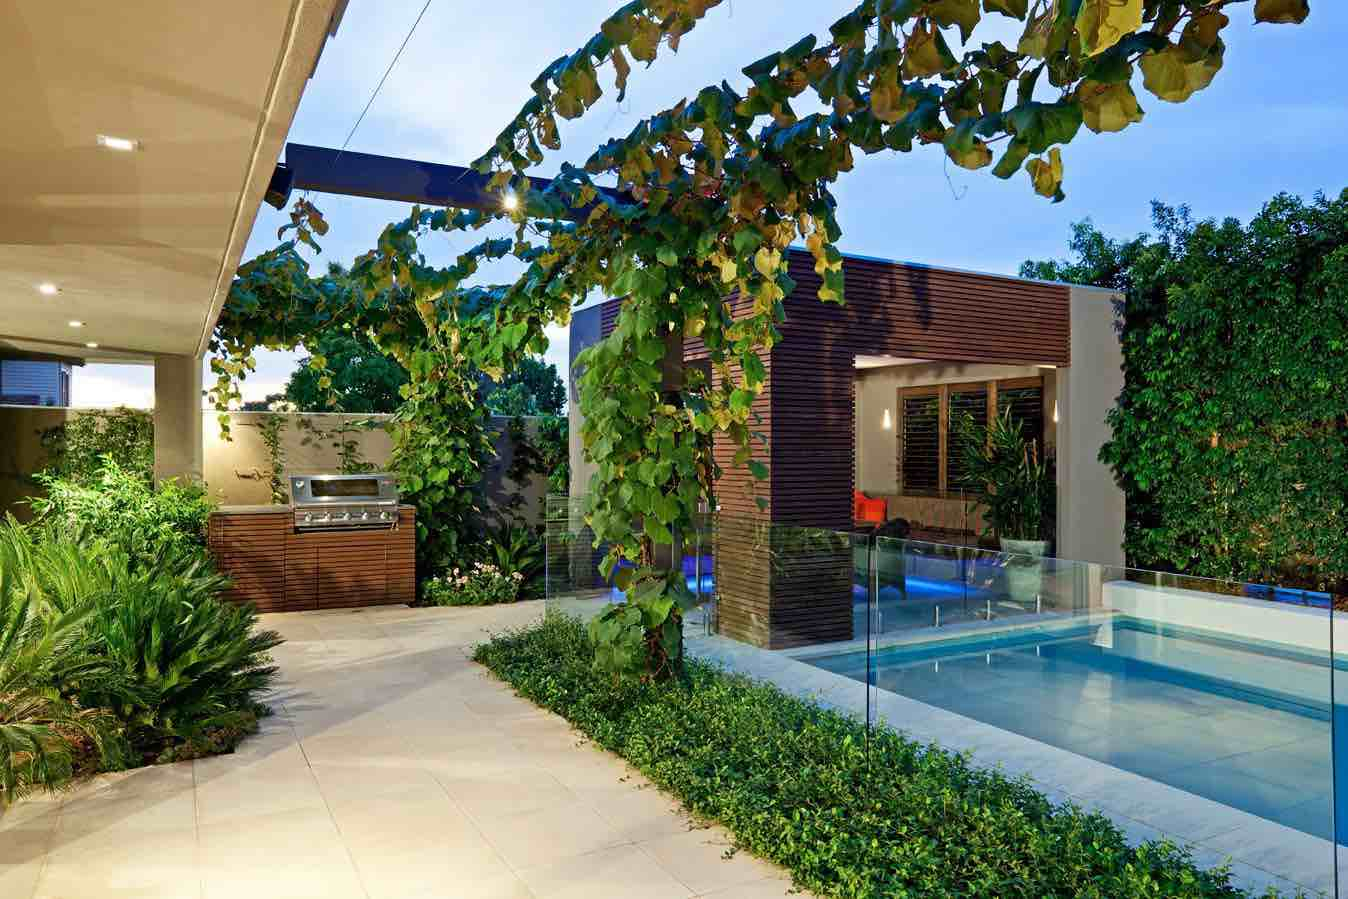 41 backyard design ideas for small yards worthminer for Small patio remodel ideas